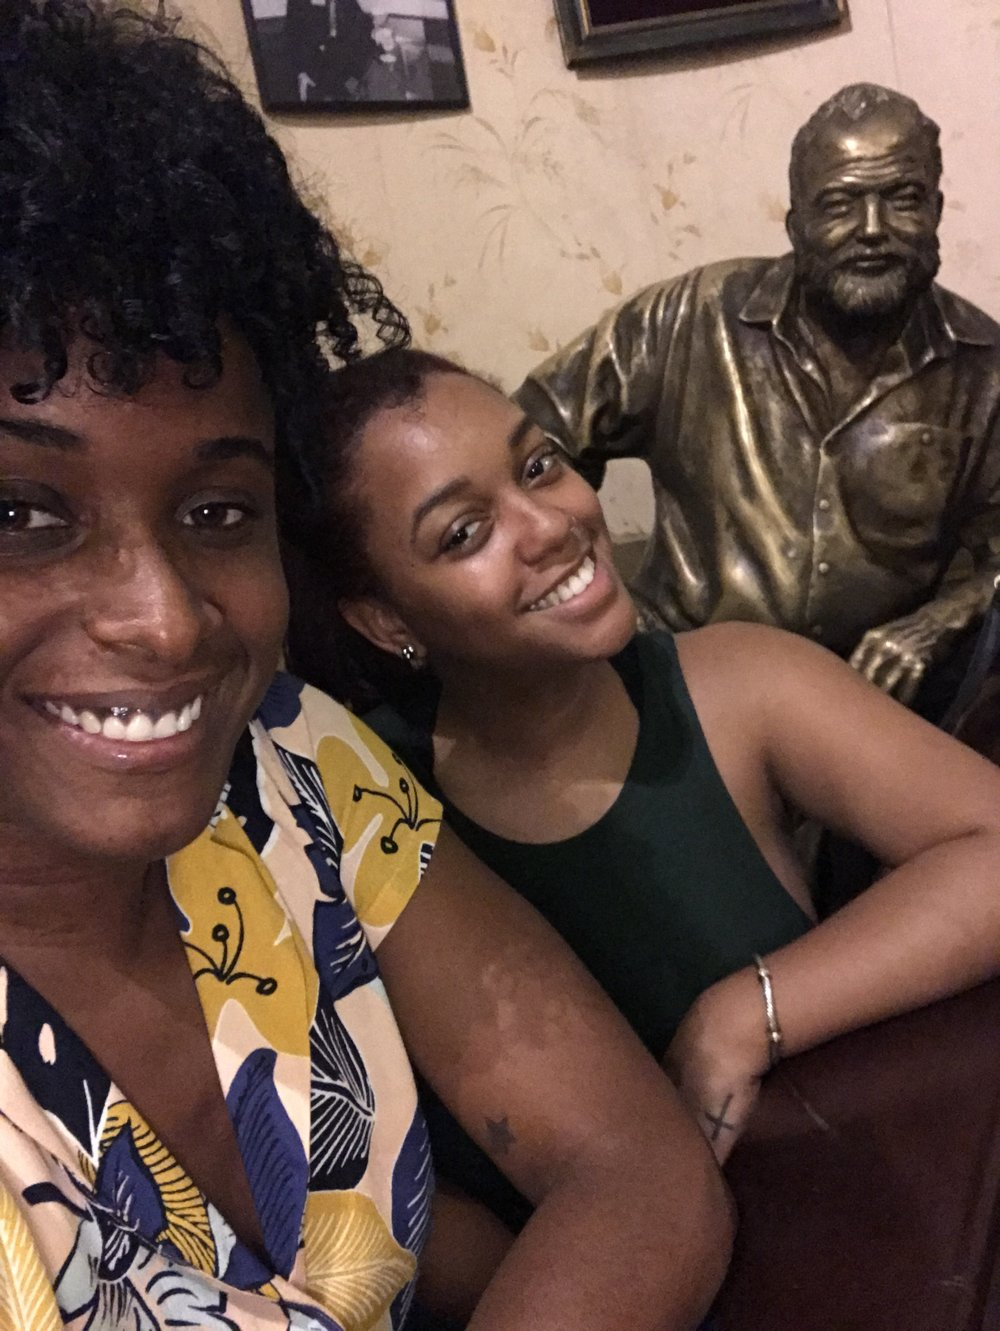 Got to kick it with Earnest Hemingway at his favorite bar, Floridita. Oh, and that spicy mamacita is my dear friend Cornielia.